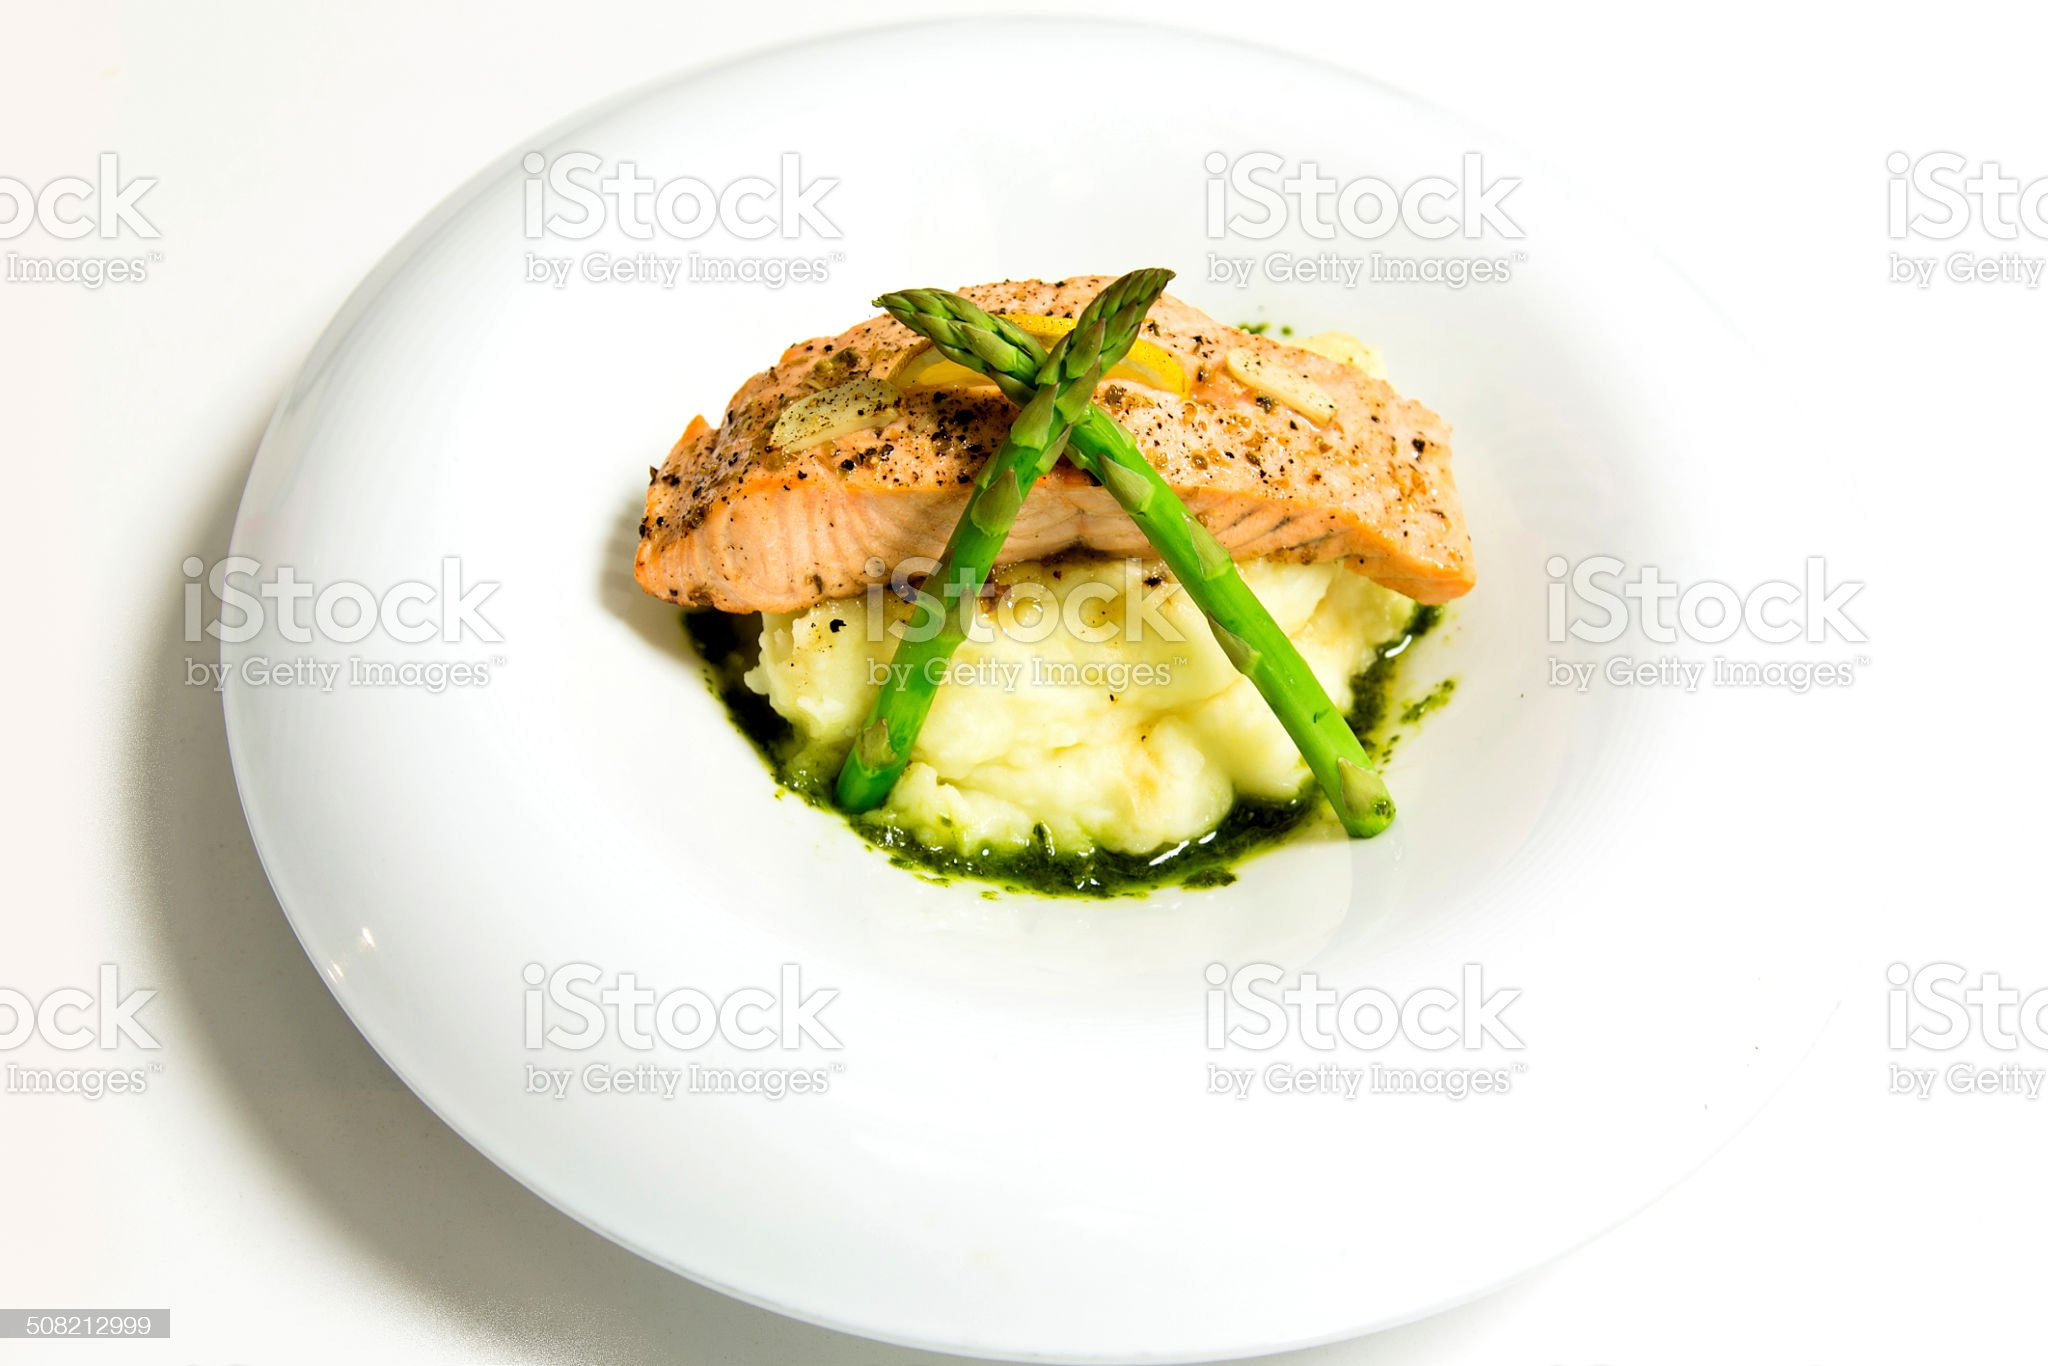 Salad mix with pears and grilled asparagus royalty-free stock photo